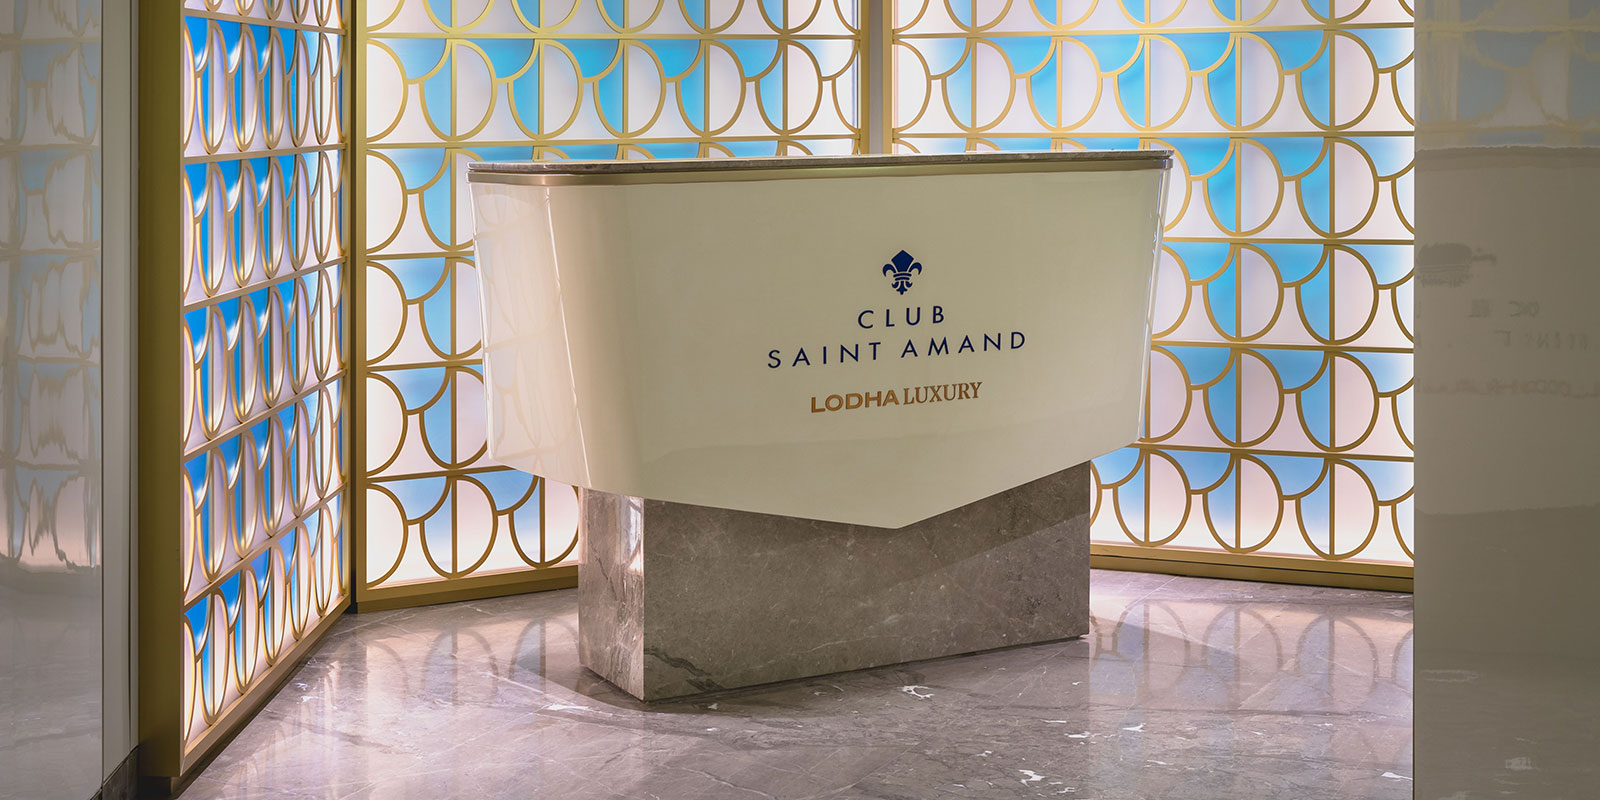 Welcome to Club Saint Amand – Mumbai's most exclusive private members club in the heart of South Mumbai. Exclusive to Lodha Ciel residents, the club caters to your rejuvenation, well-being, entertainment and keeps you in touch with your business as well. Bespoke luxury and away from the prying eyes. It's your private club right at home.